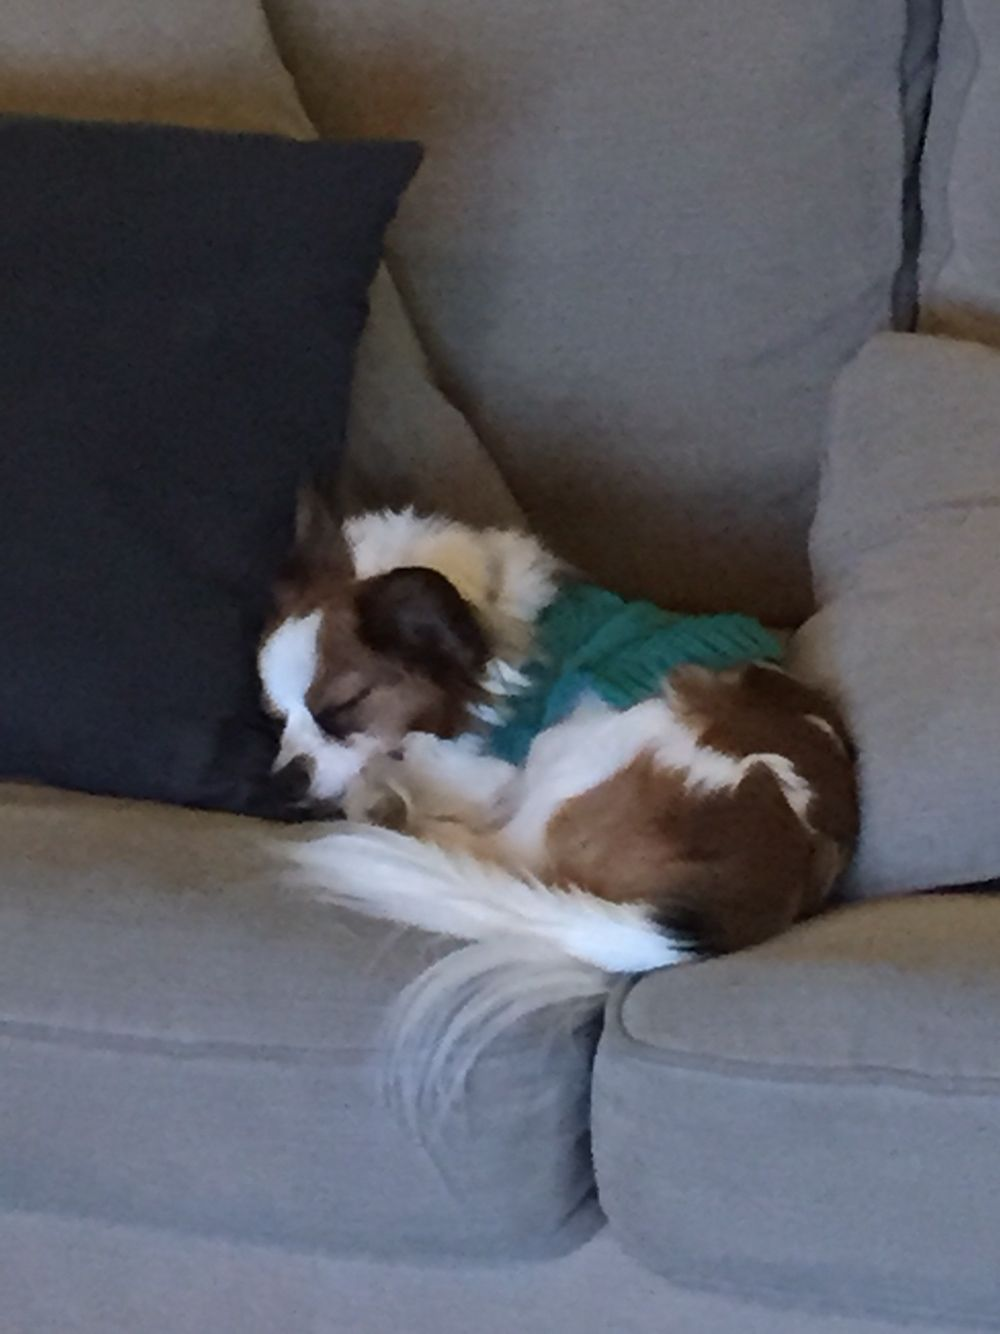 Angel Dog Porn - So warm and cozy! | Puppies!! | Papillon dog, Dogs, Dog daycare